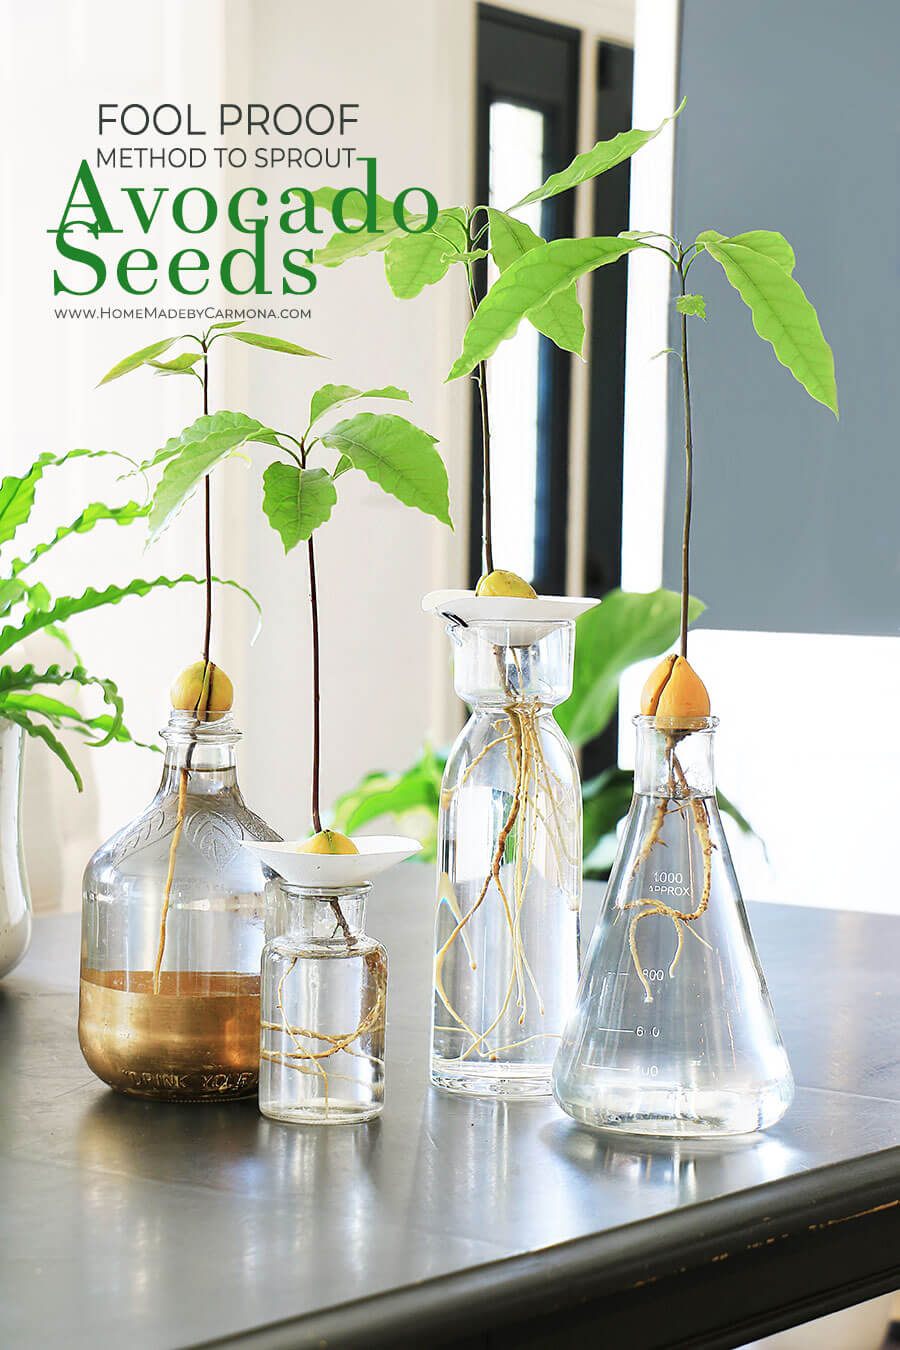 Fool-Proof-Method-to-Sprout-Avocado-Seeds